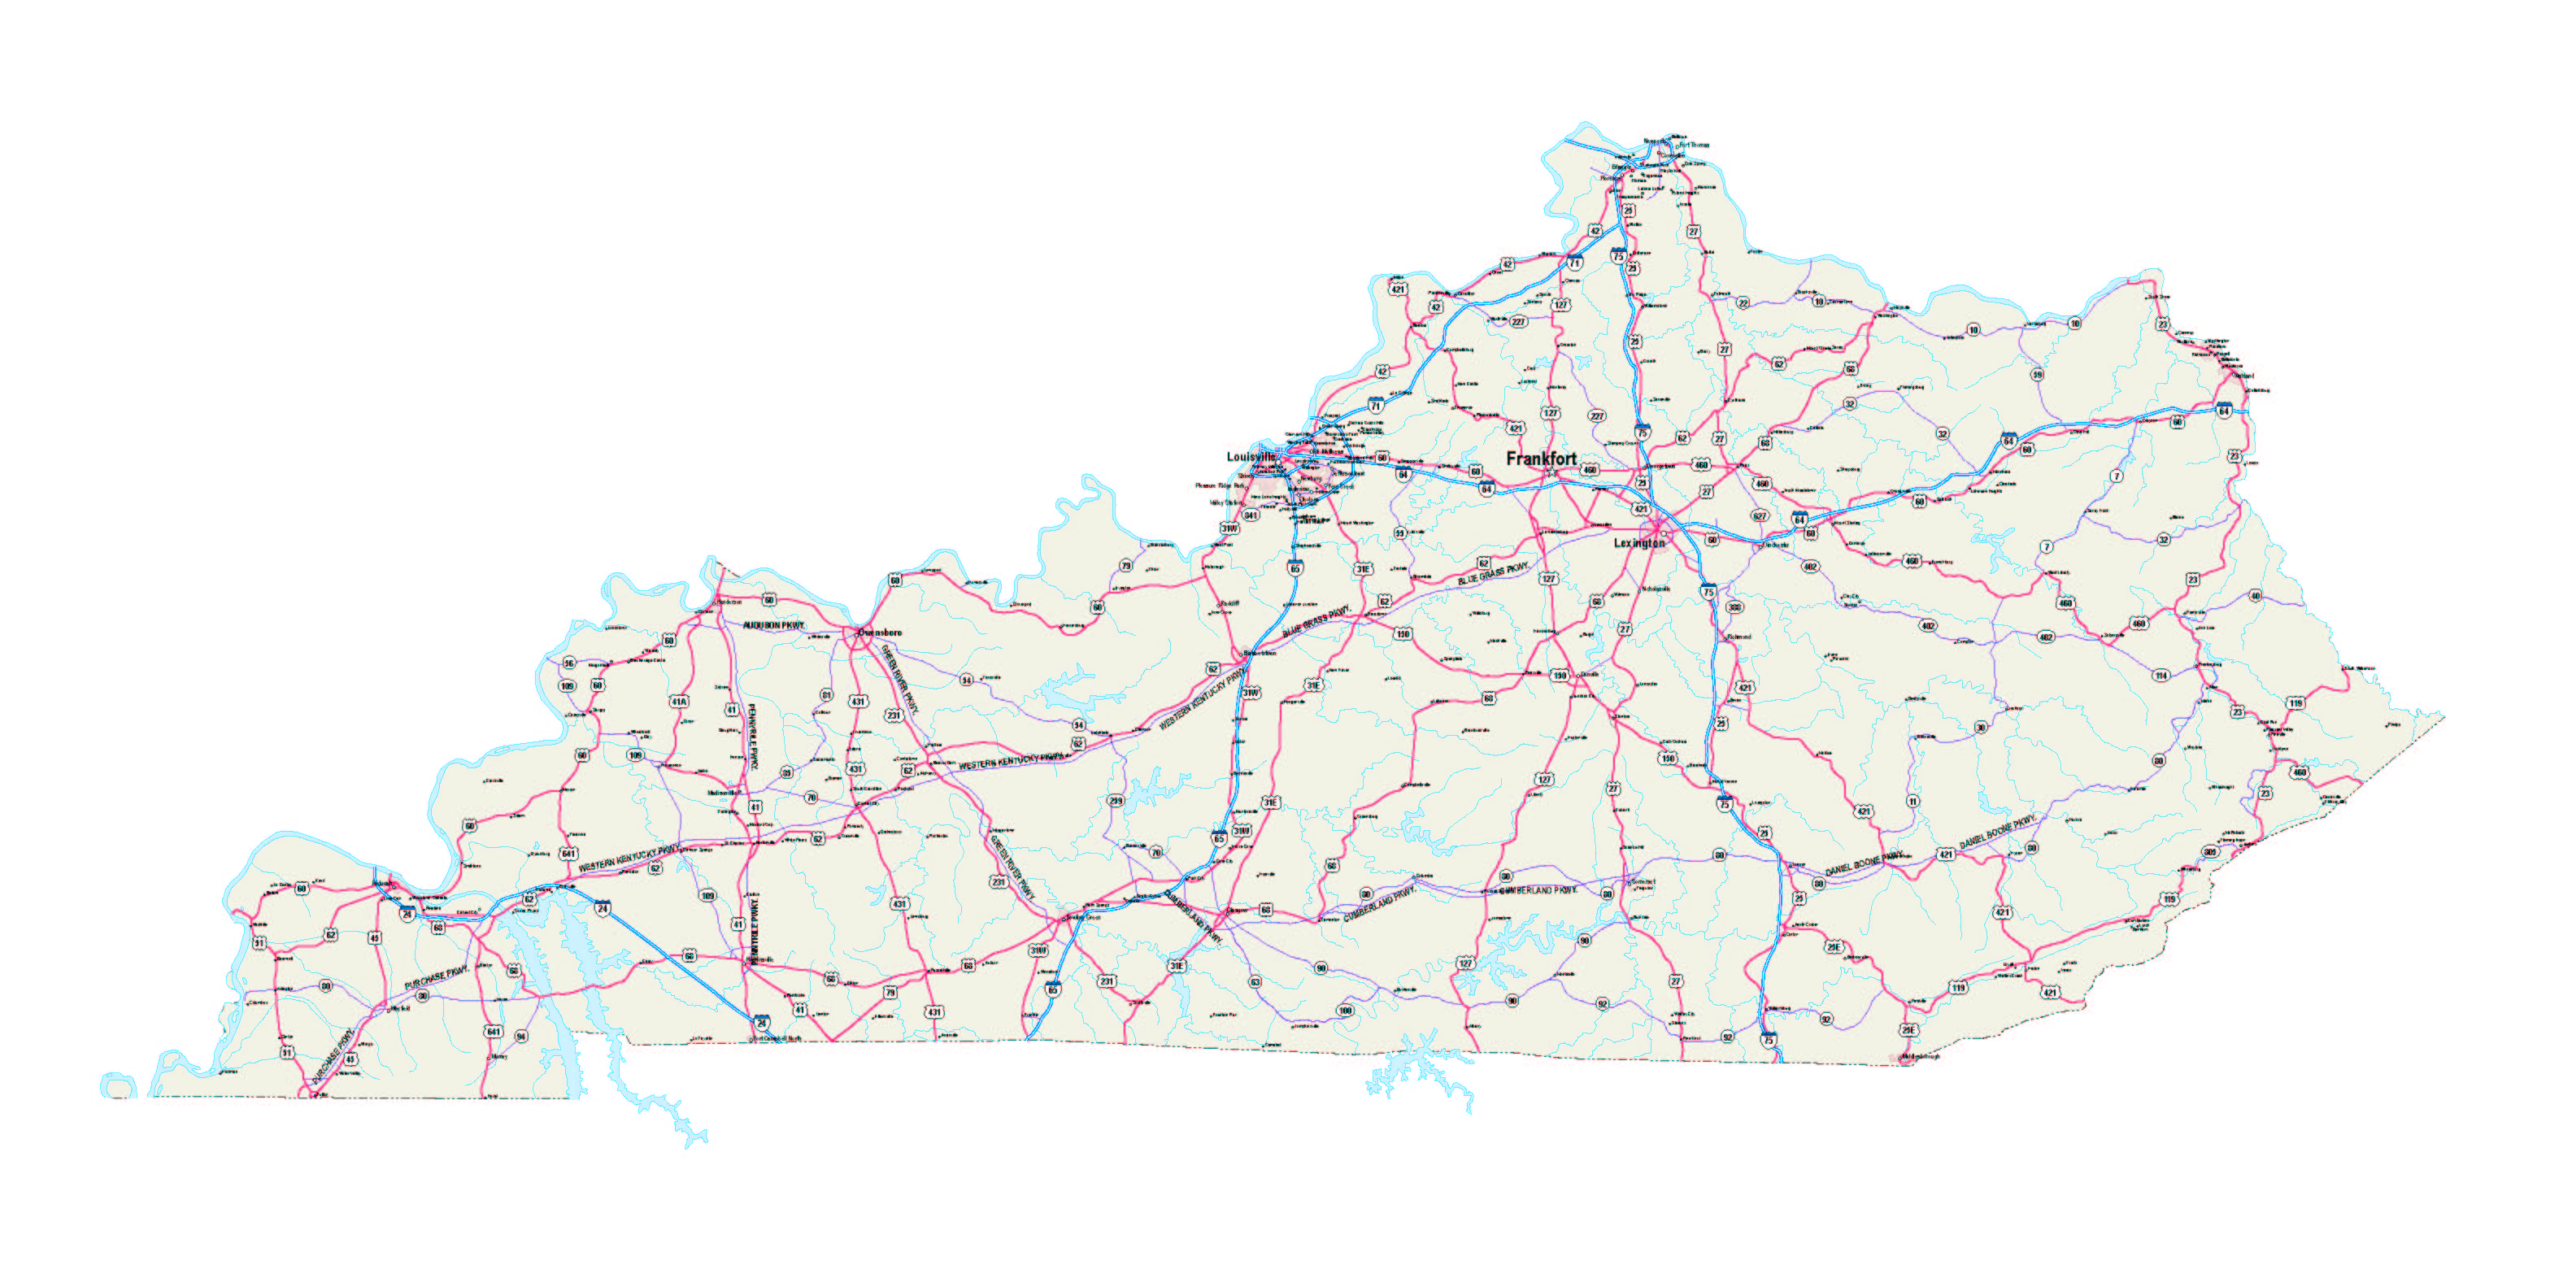 Kentucky Maps Kentucky Map Kentucky State Map Kentucky Road Map - Road map of kentucky